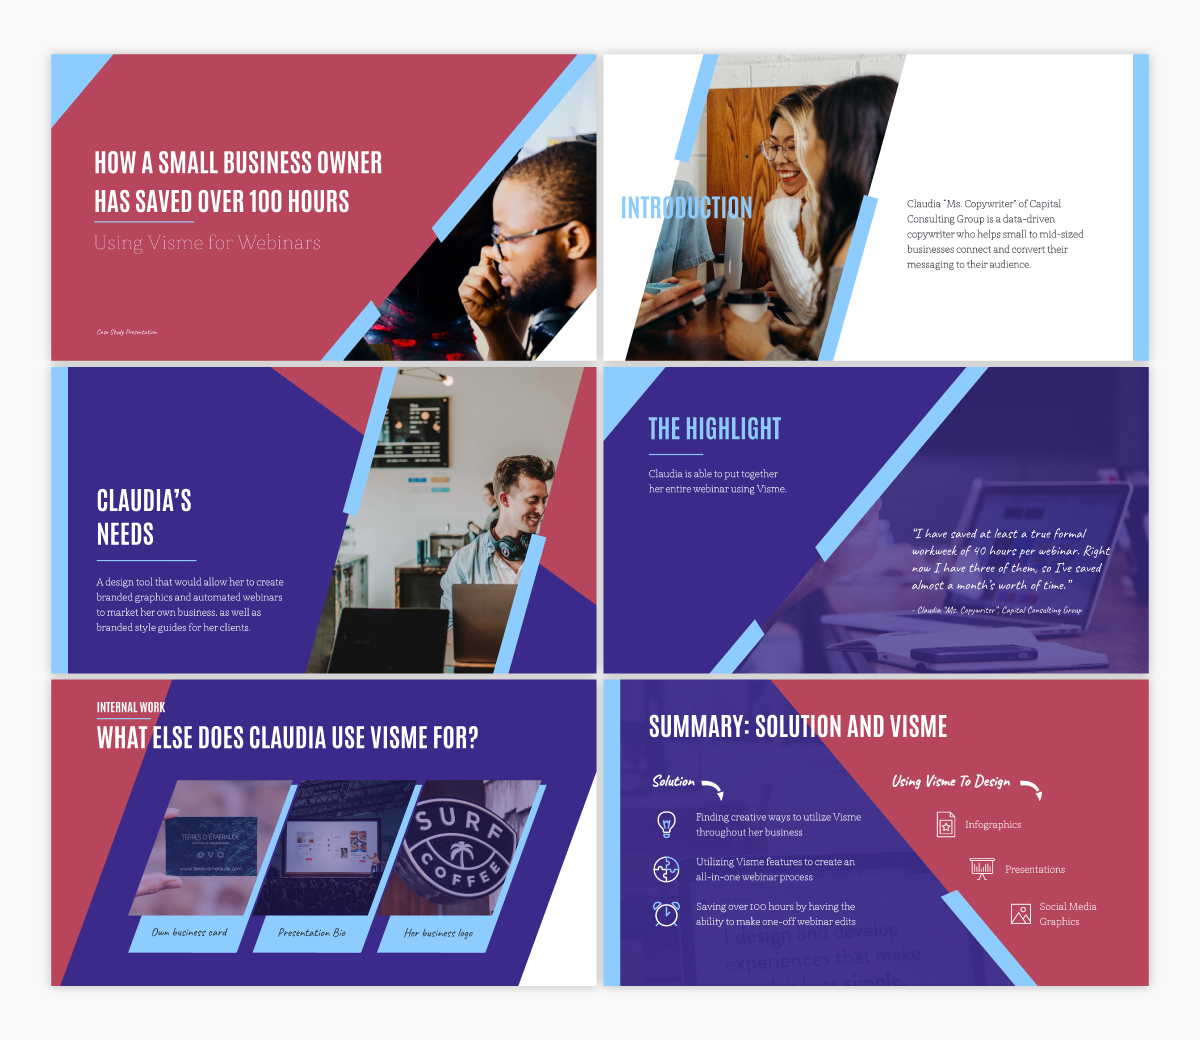 A case study keynote template available in Visme.